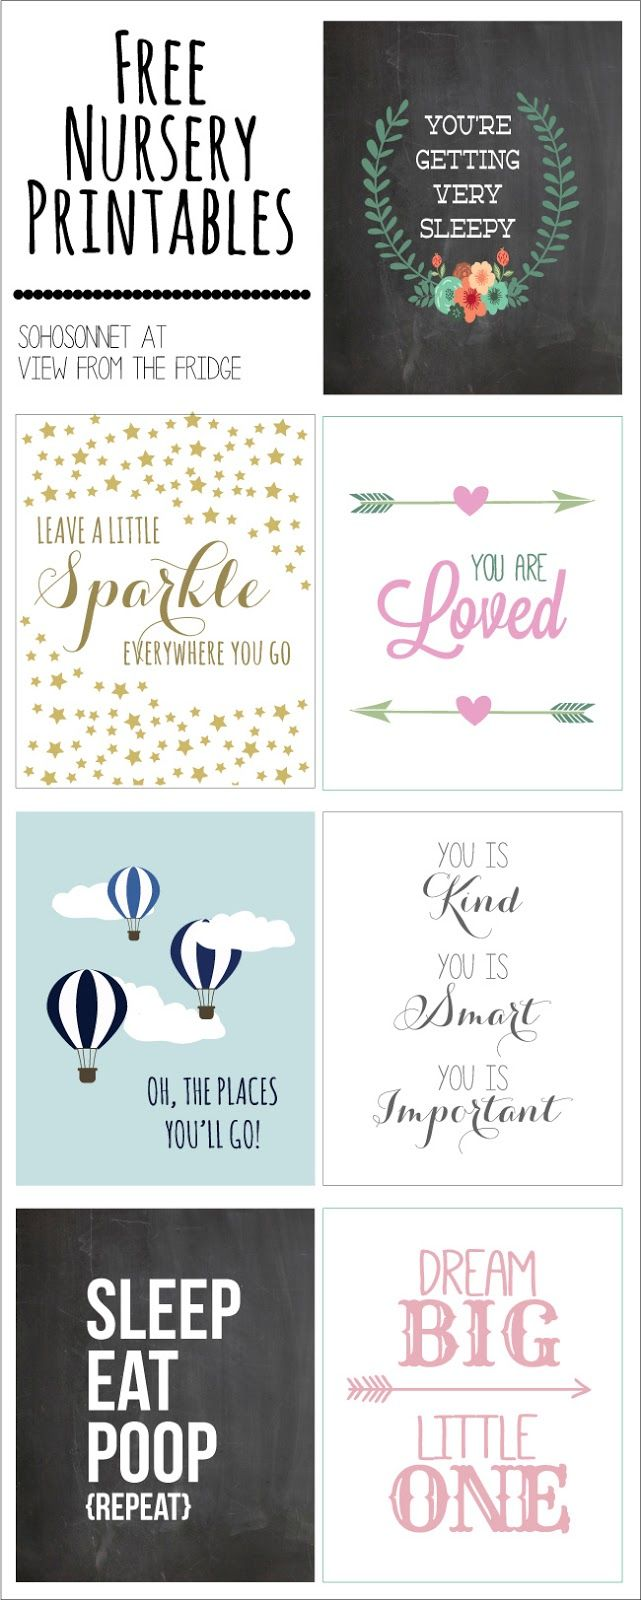 Cute! Free nursery printables or would work in a little kids' room too.